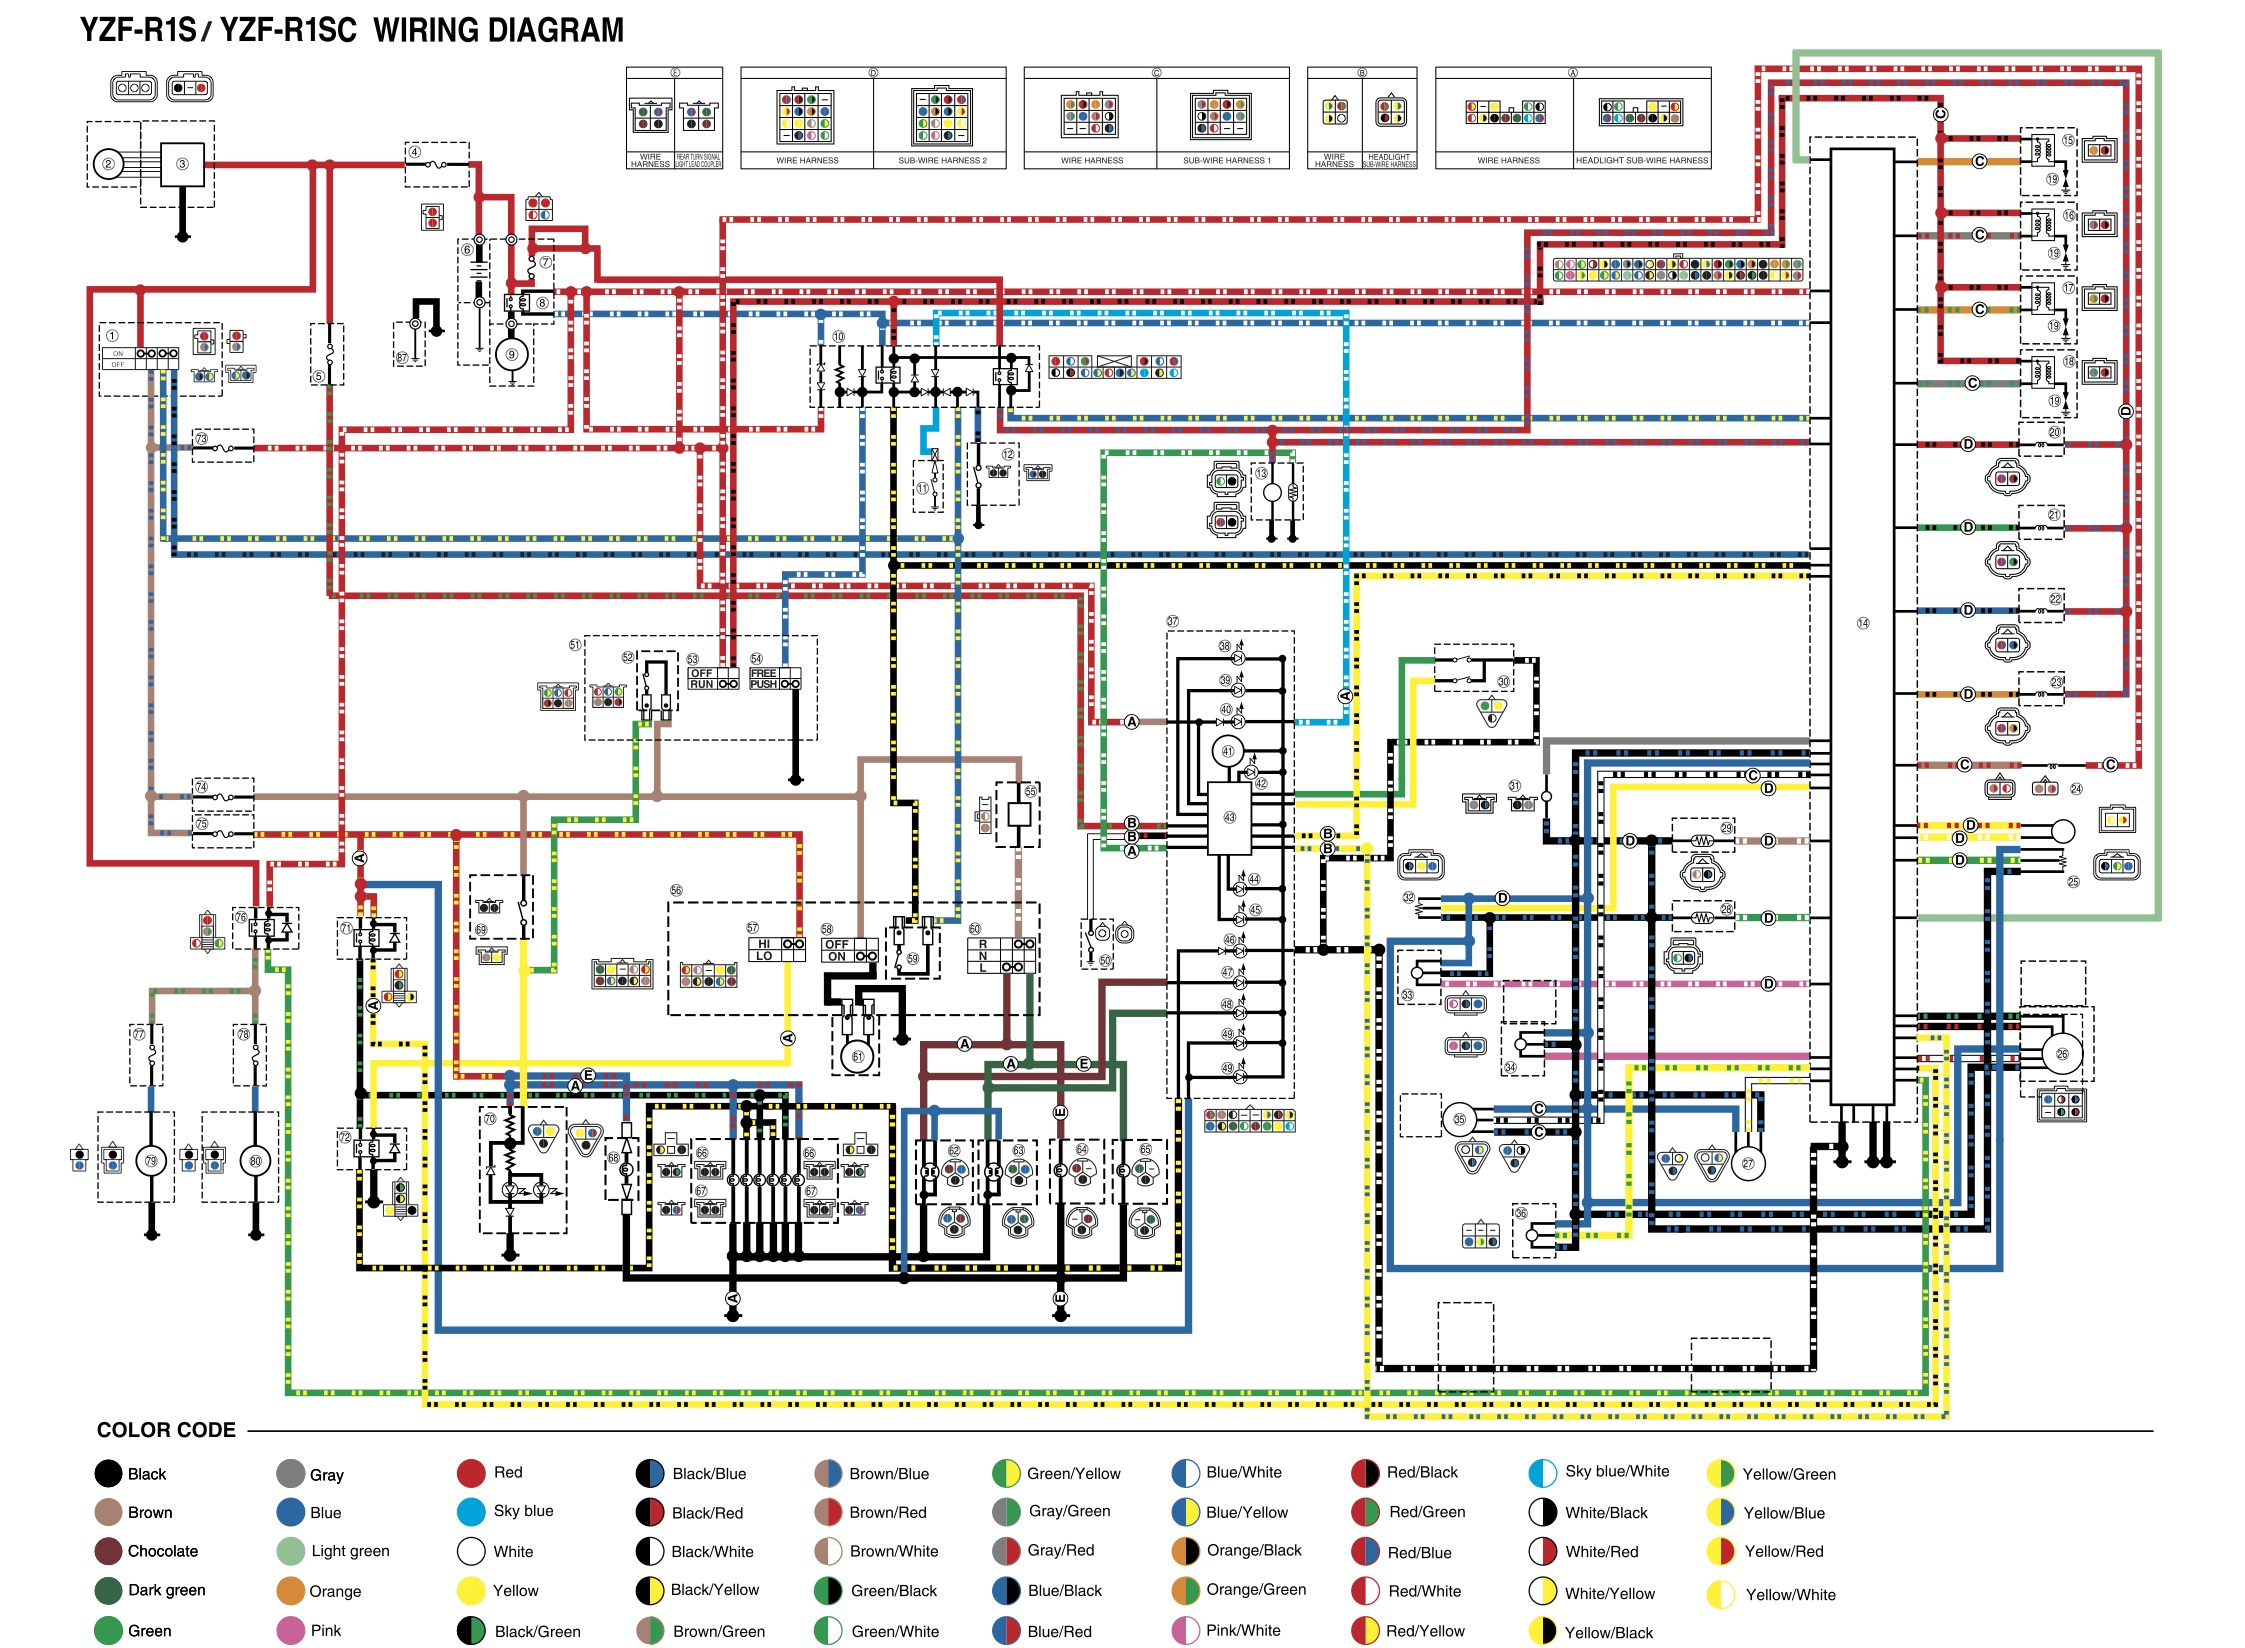 [ANLQ_8698]  DIAGRAM> Yamaha Rhino Ignition Wiring Diagram FULL Version HD Quality Wiring  Diagram - DIAGRAMOFHEART.GALLERIADUOMO.IT | Rhino Wiring Diagram |  | Diagram Database